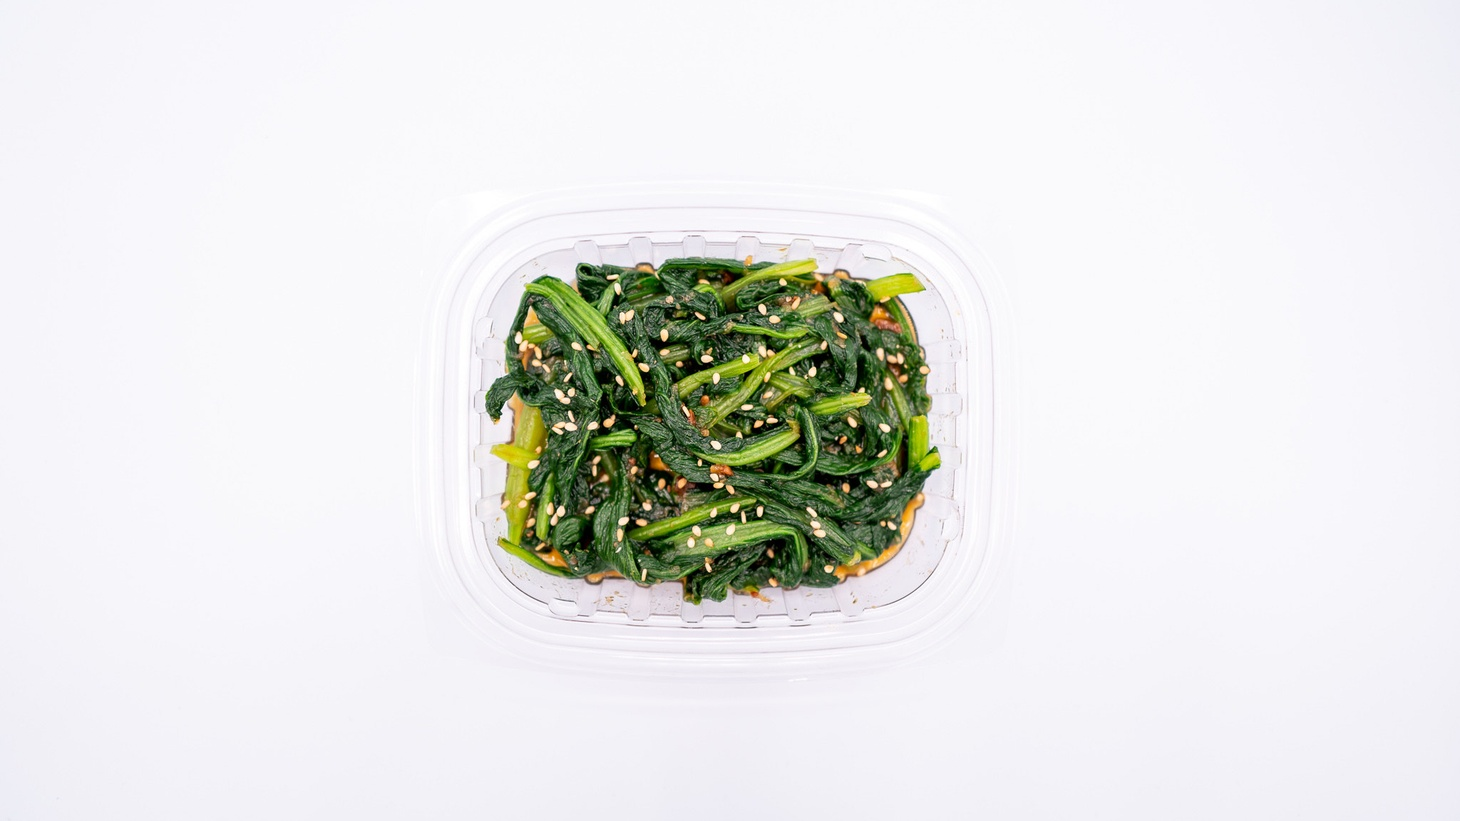 Komatsuna is a Japanese mustard spinach which Jihee Kim is using for her new project, Perilla.